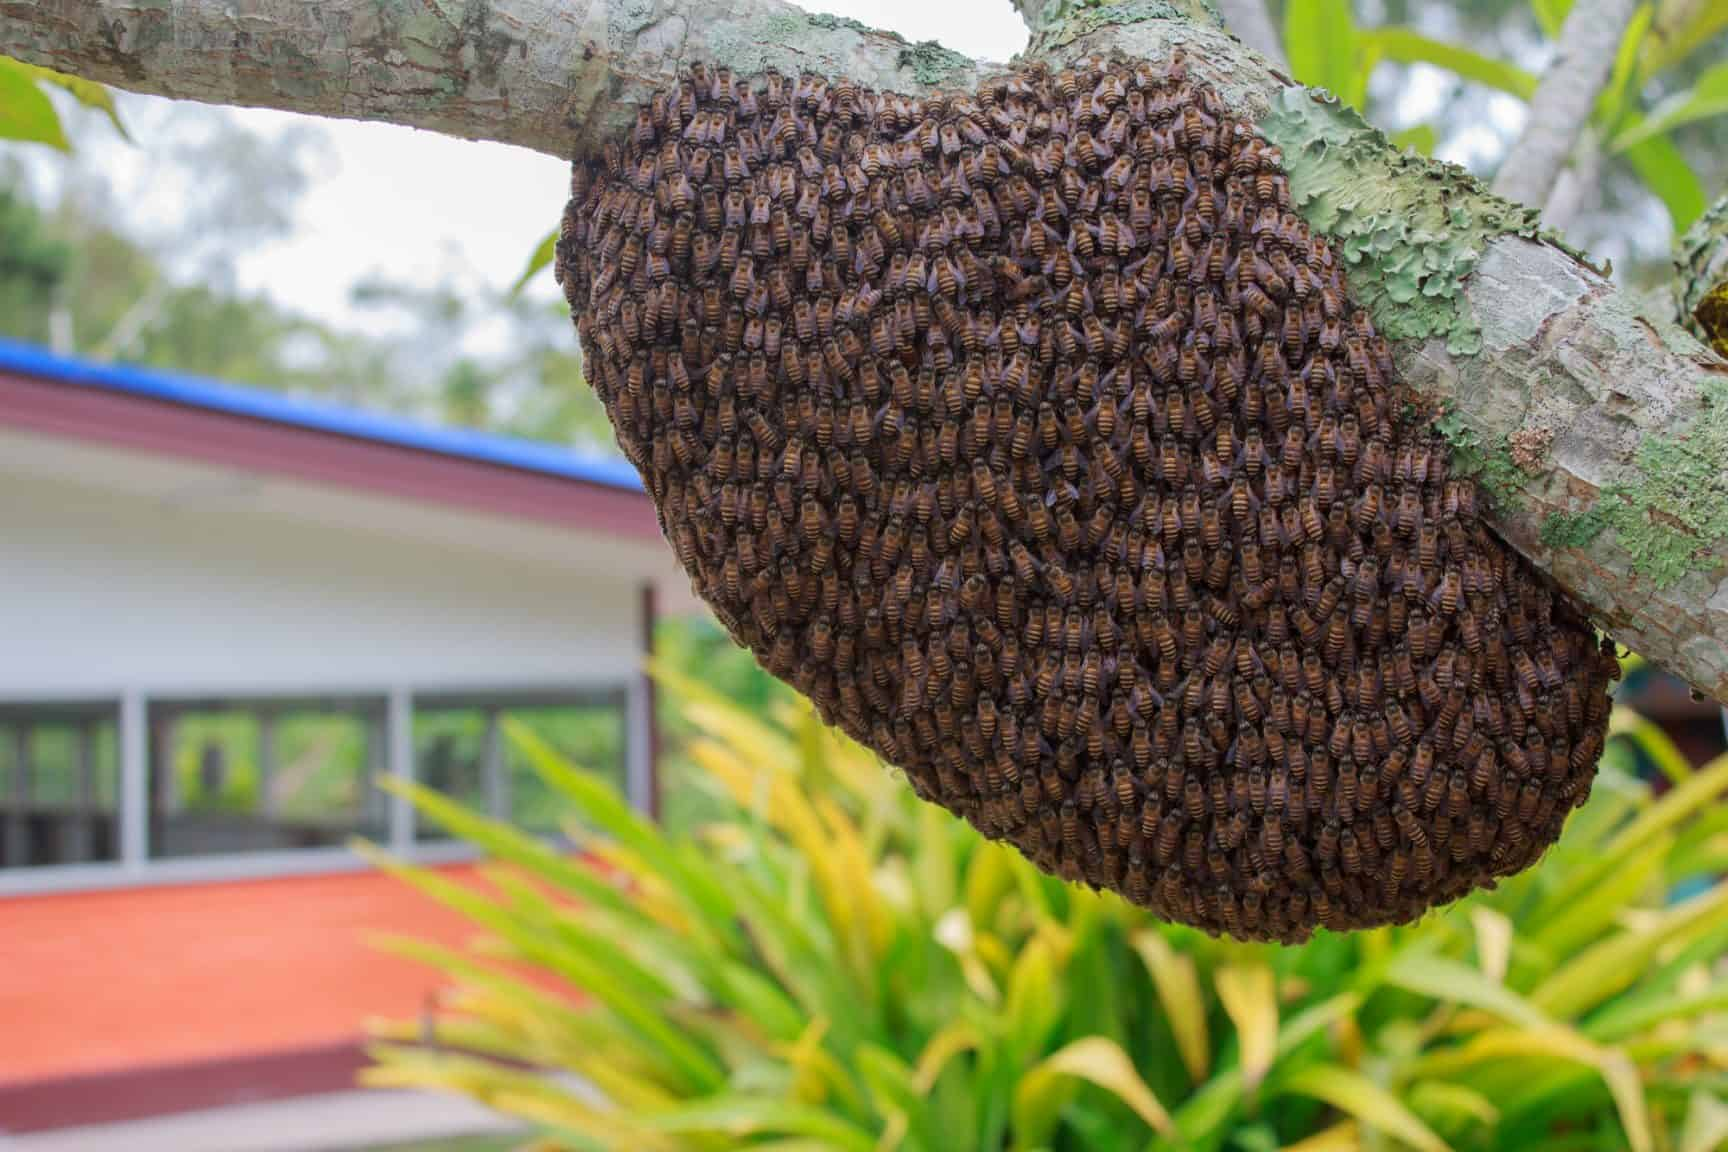 Capturing and Installing A Swarm of Bees